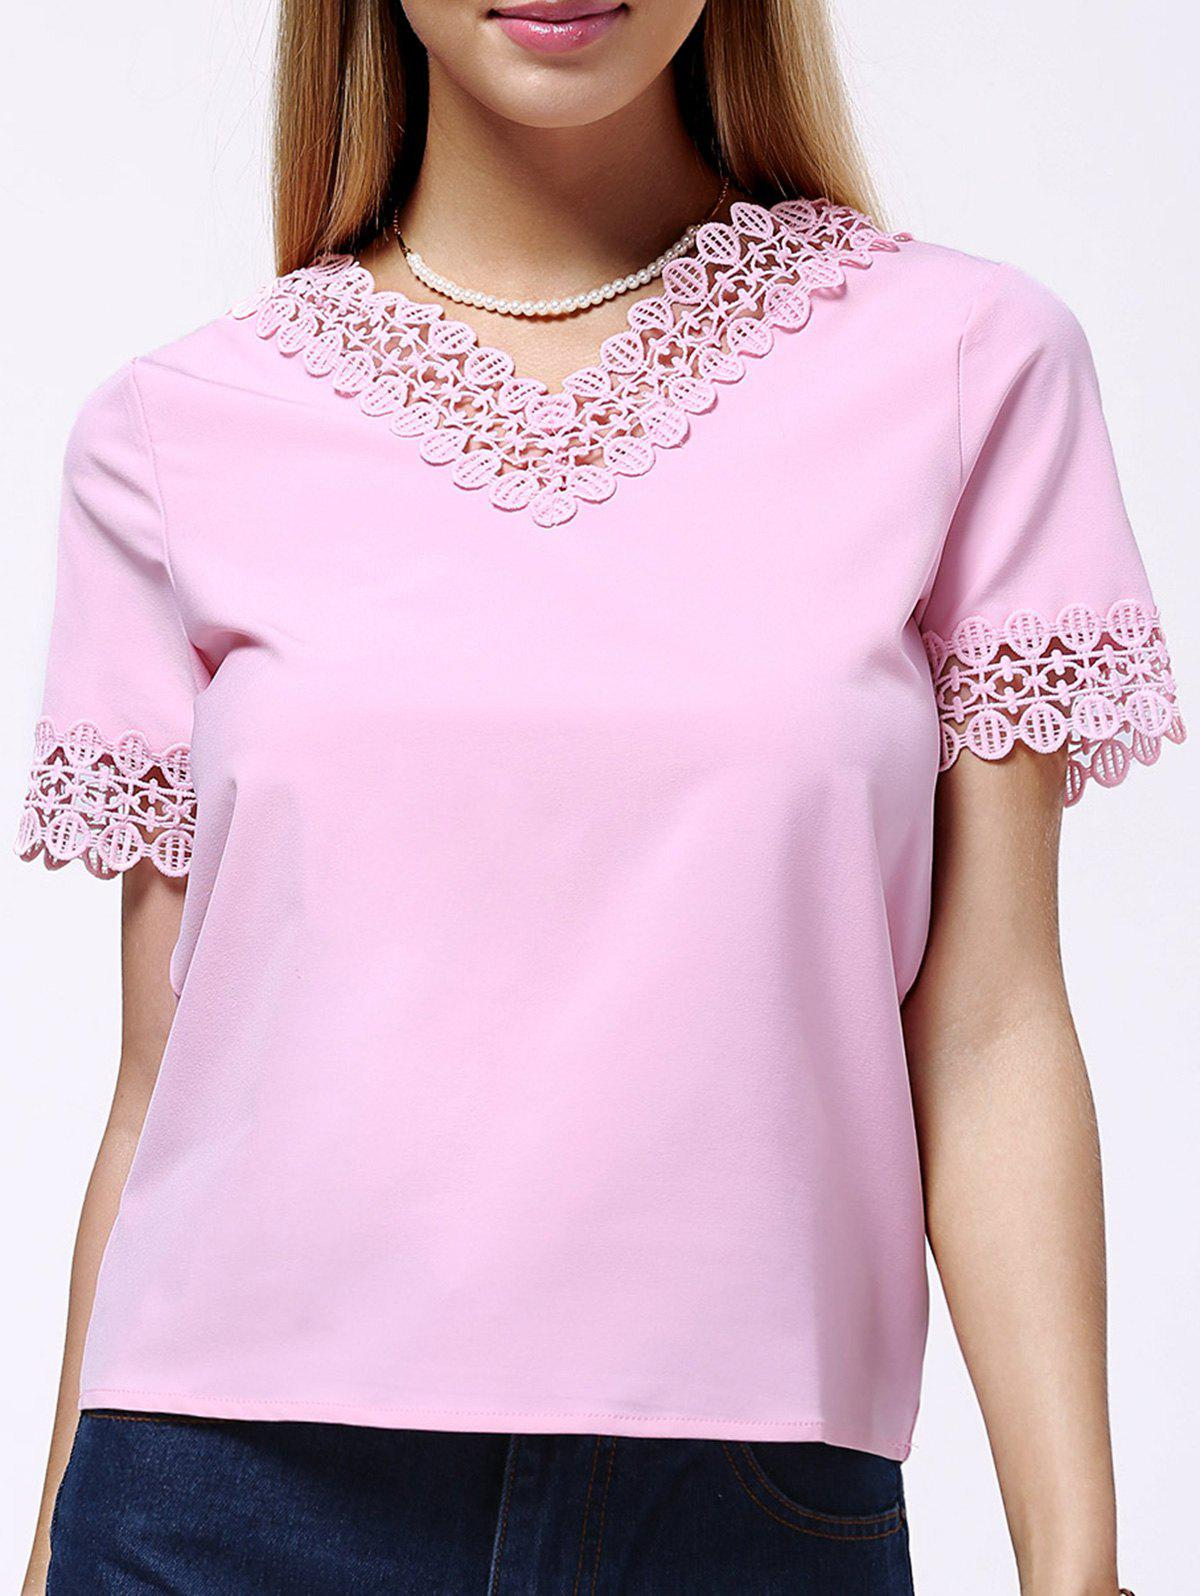 Sweet Women's Short Sleeve V Neck Pure Color Lace Spliced Blouse - PINK L